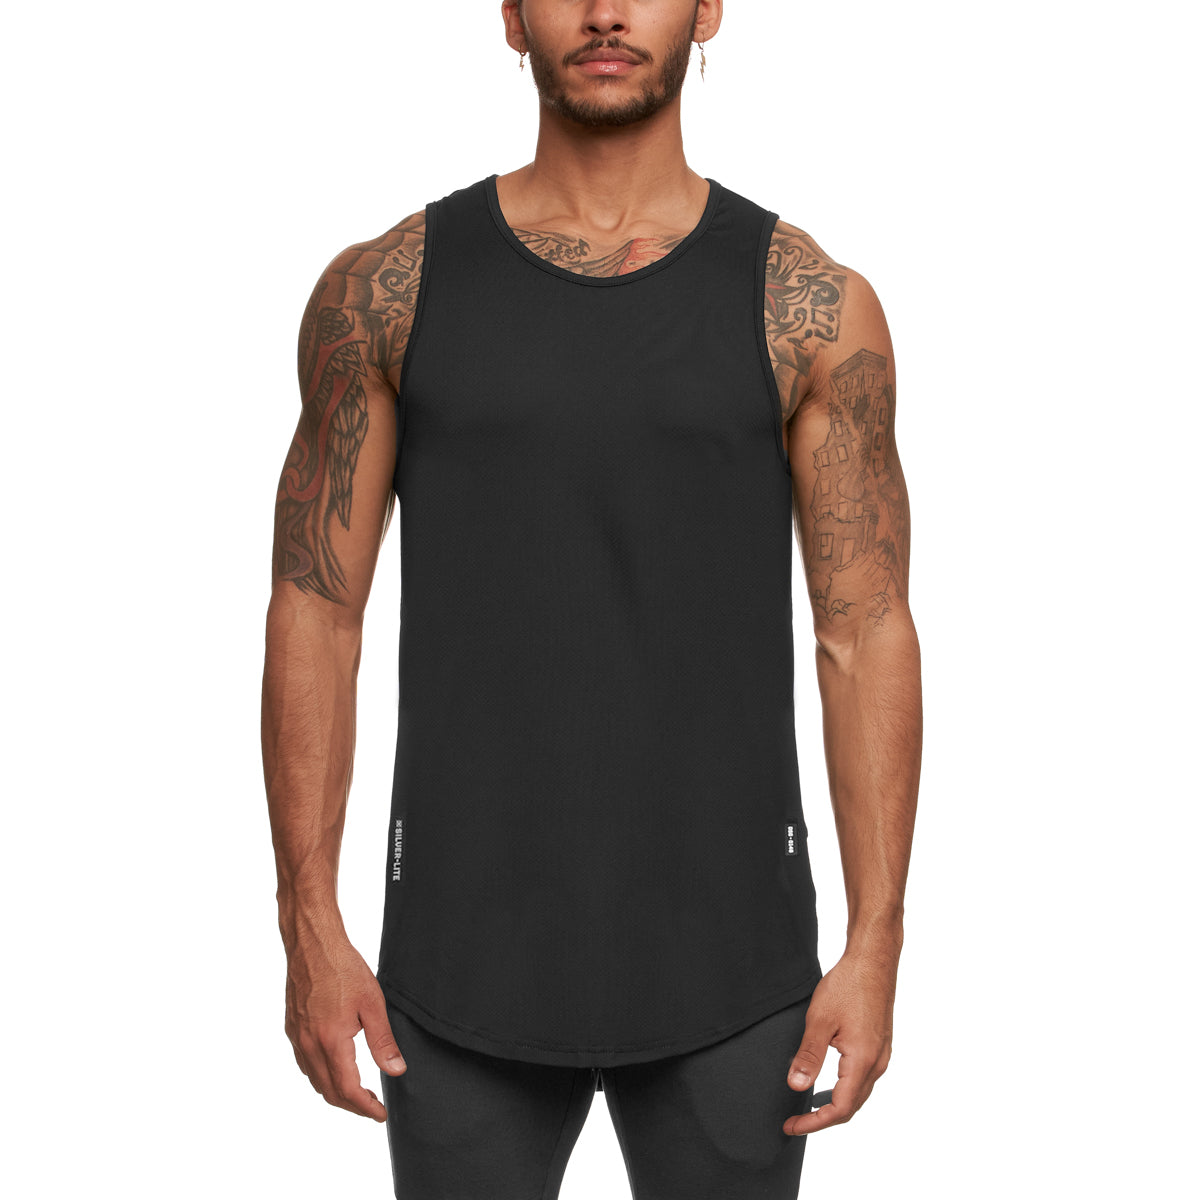 0146. Silver-Lite® Tank Top - Black